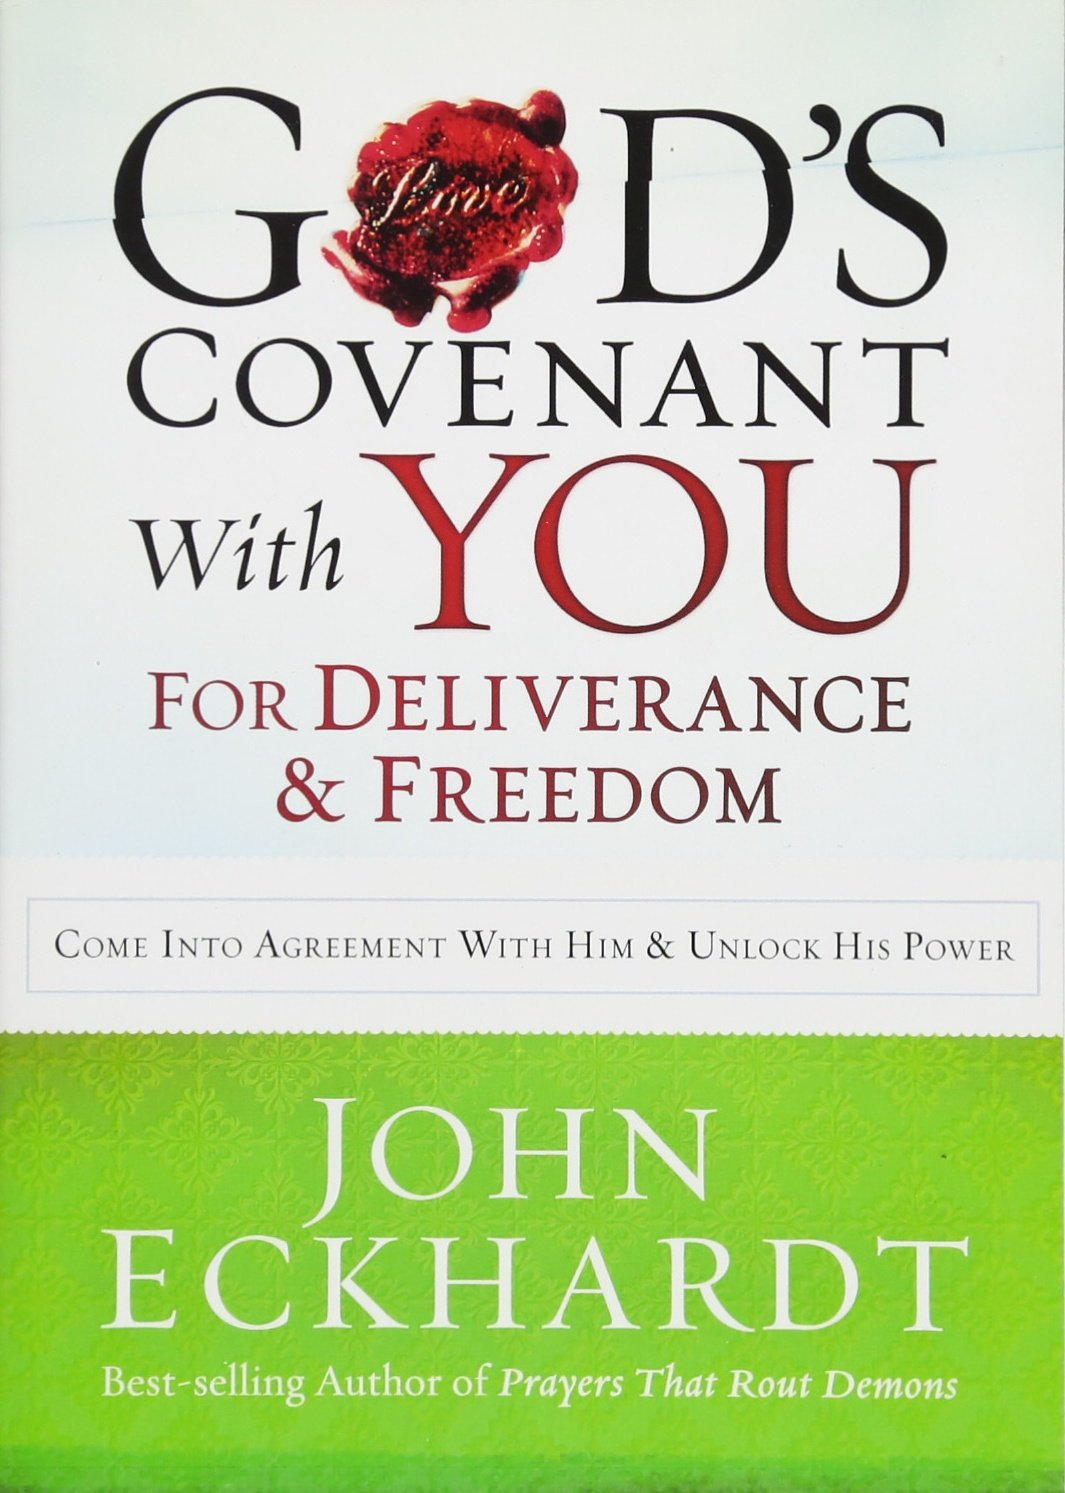 God's Covenant With You for Deliverance and Freedom: Come Into Agreement  With Him and Unlock His Power: John Eckhardt: 9781621365792: Amazon.com:  Books